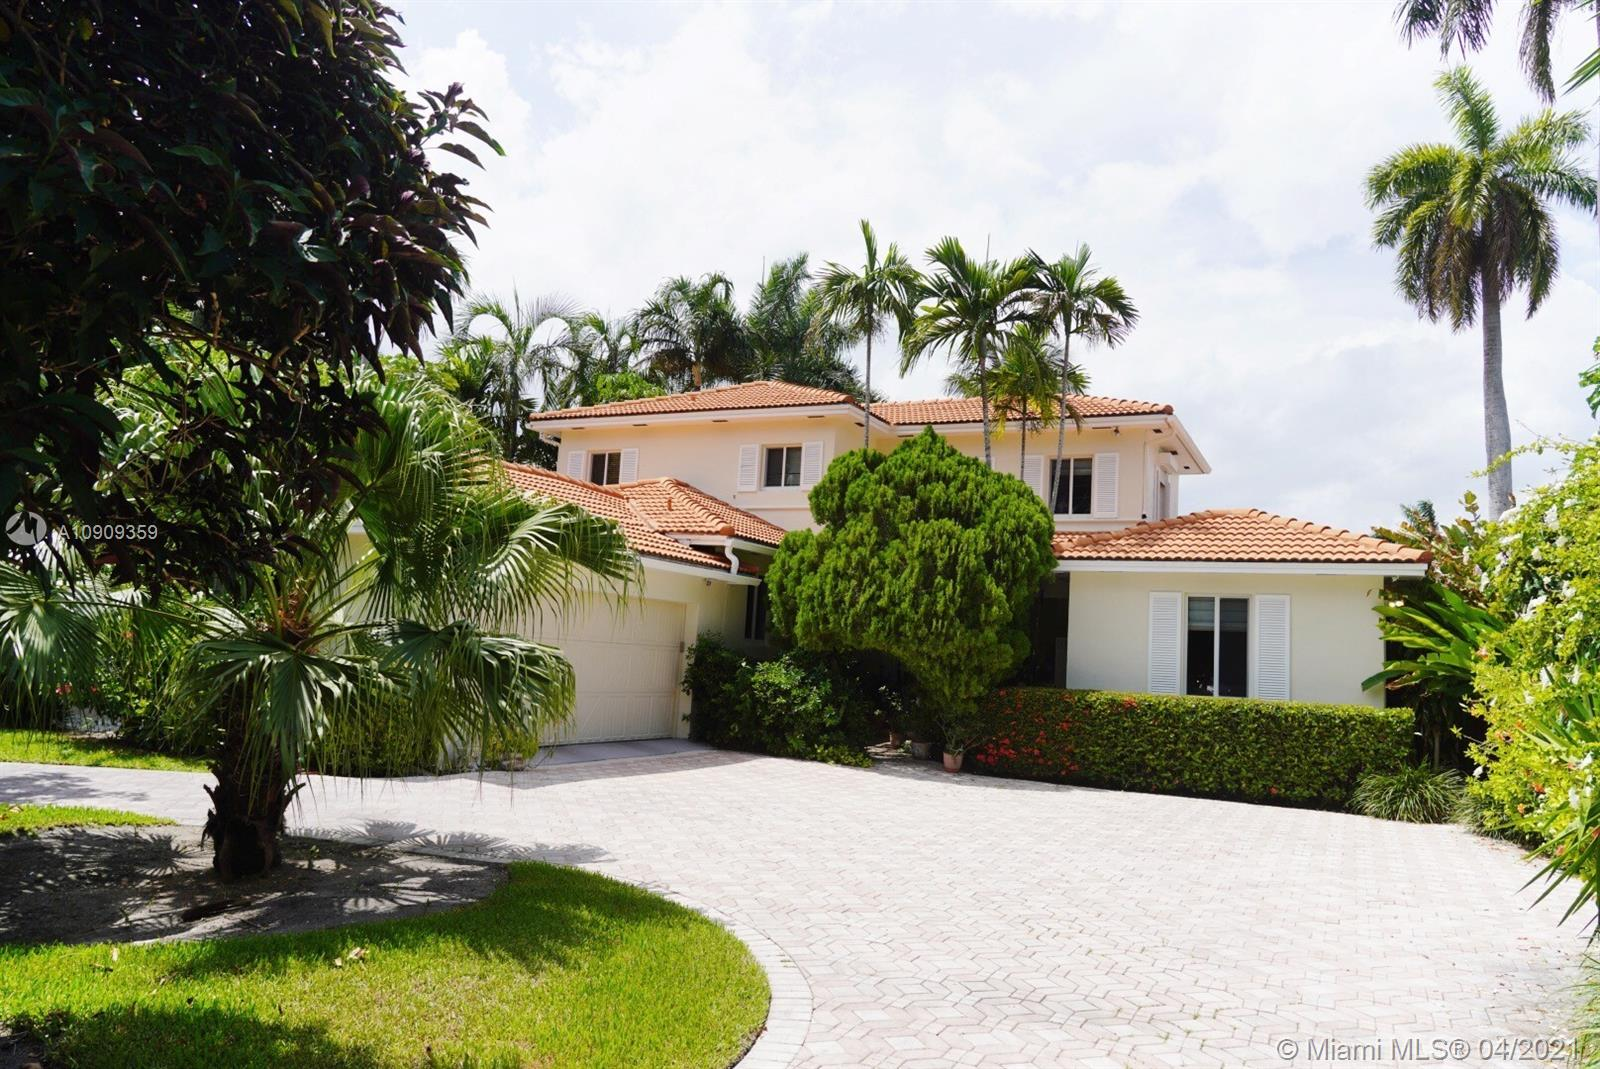 1775 W 24th St  For Sale A10909359, FL